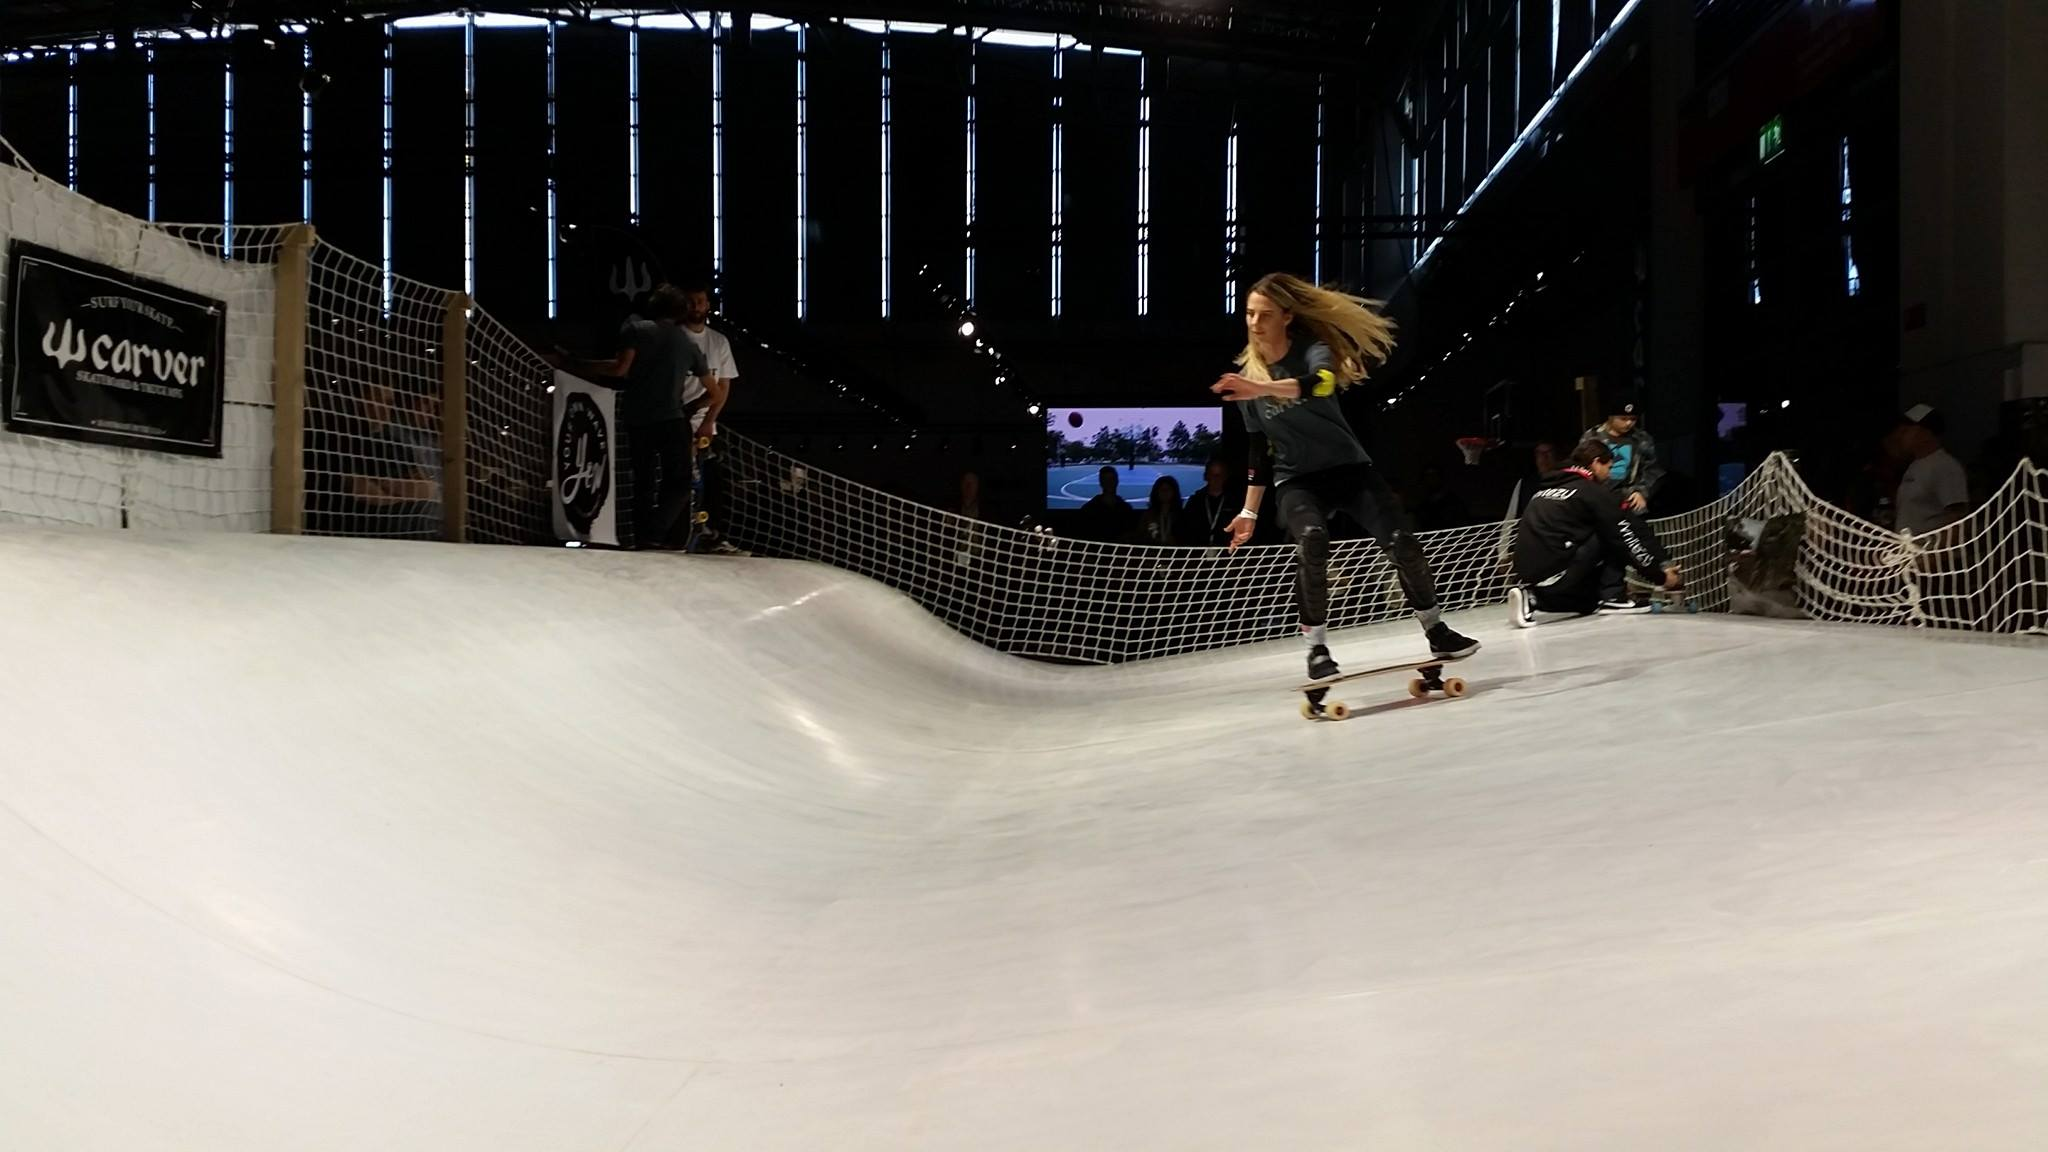 Surfskate Urban Wave at ISPO Munich